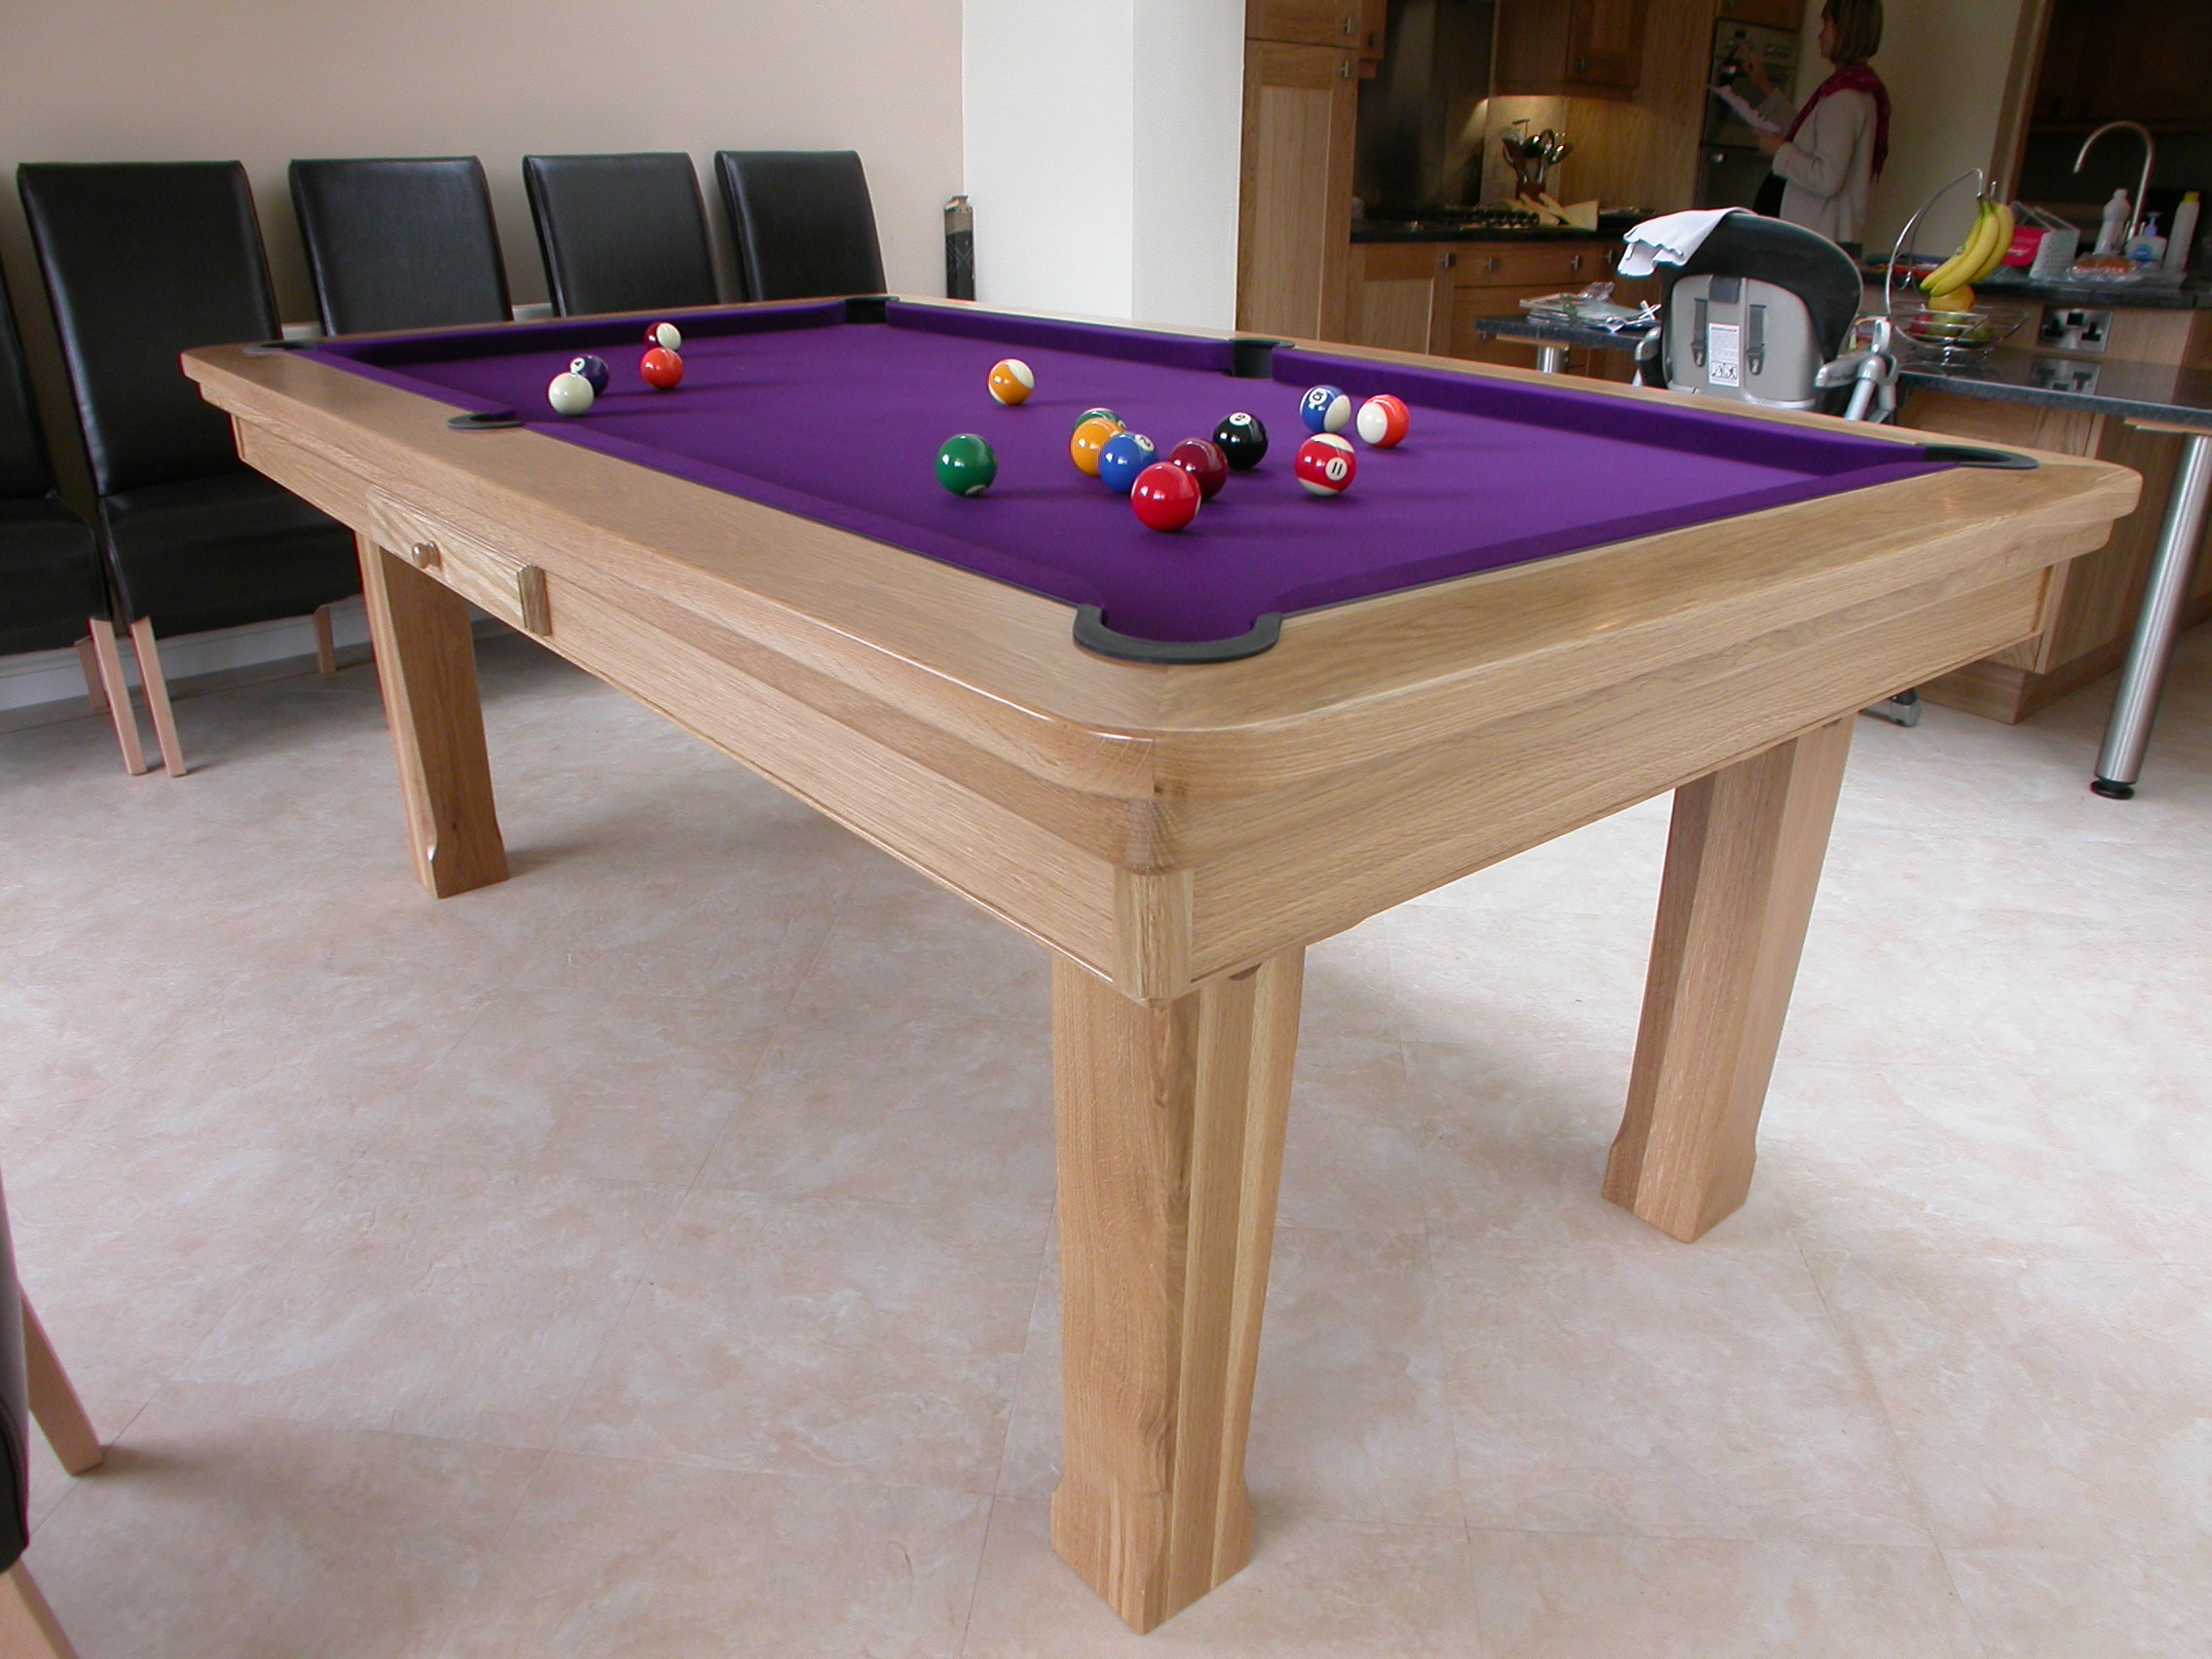 Amazing Design Of The Pool Dining Table With Brown Wooden Materials Added With Purple Countertops Parts Of The Pool